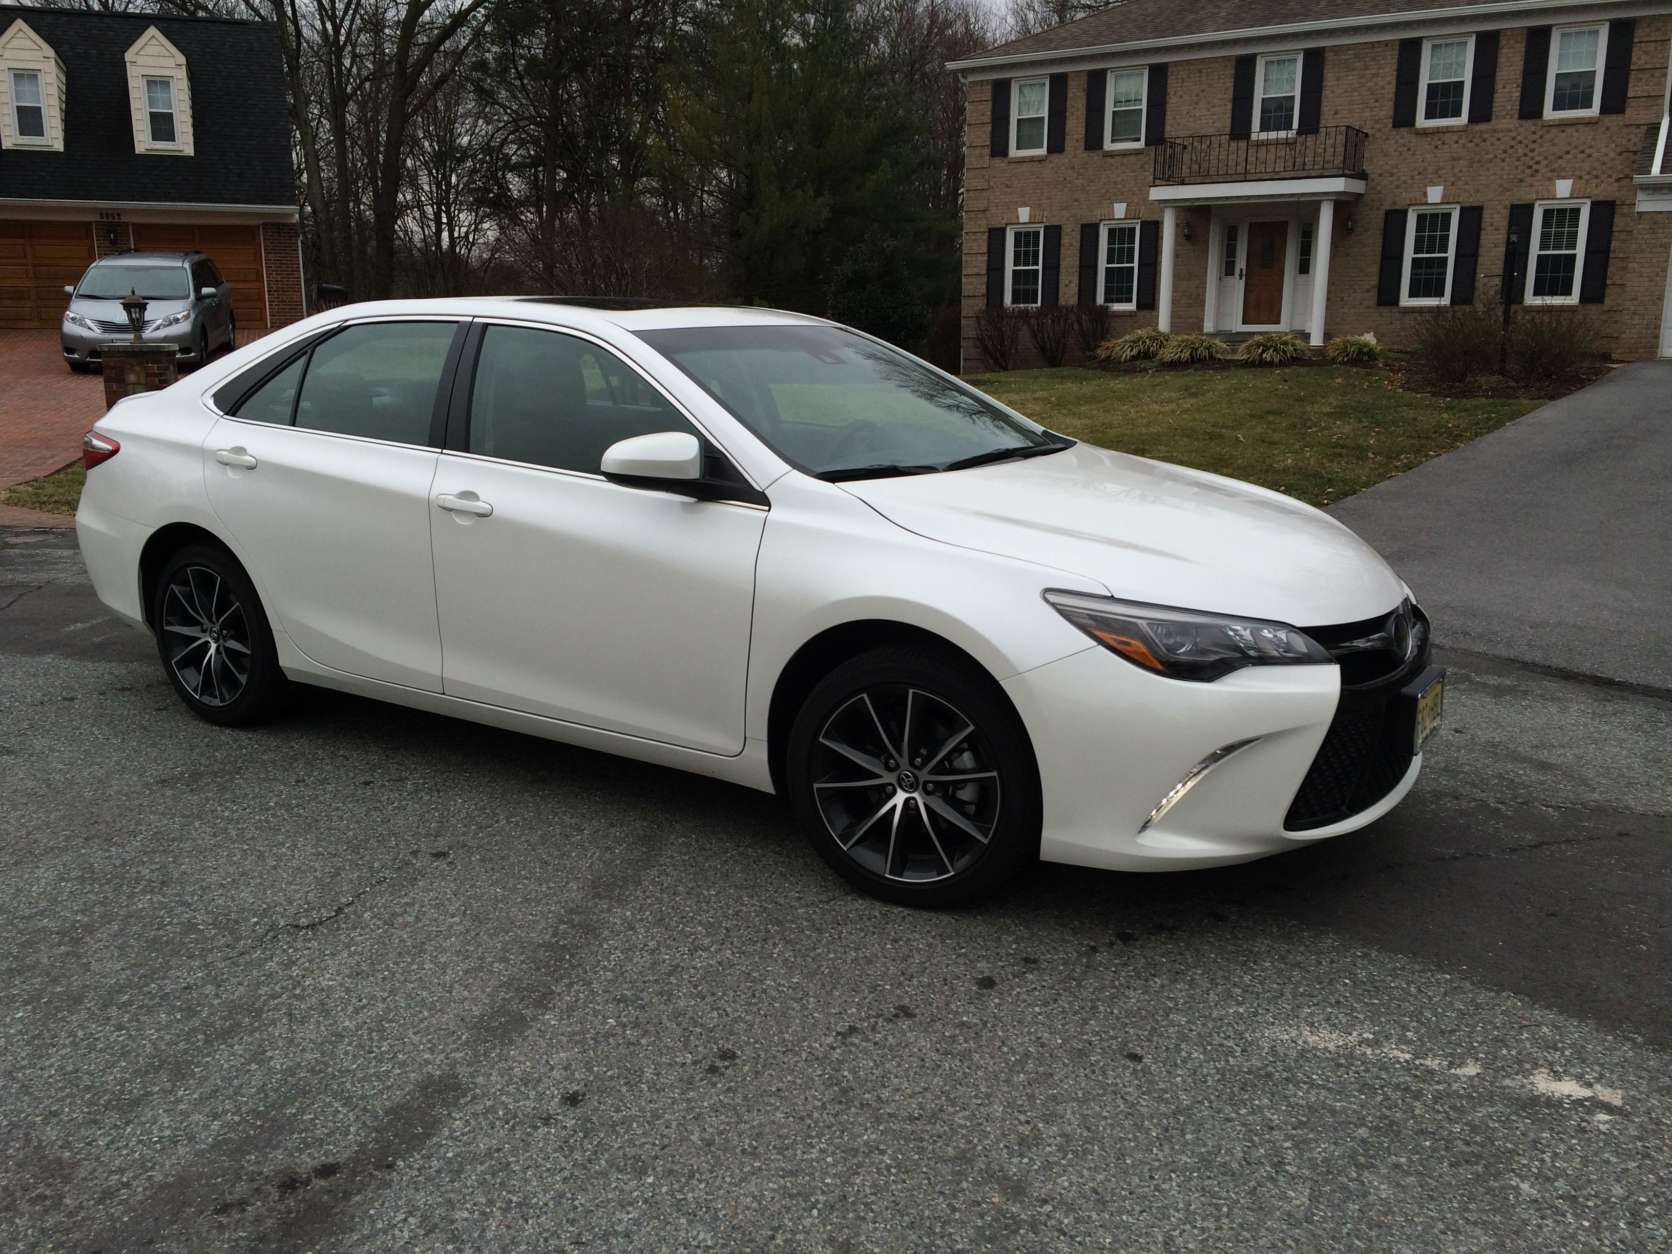 2017 Camry Xse >> Car Review 2017 Toyota Camry Adds Some Sport To Midsize